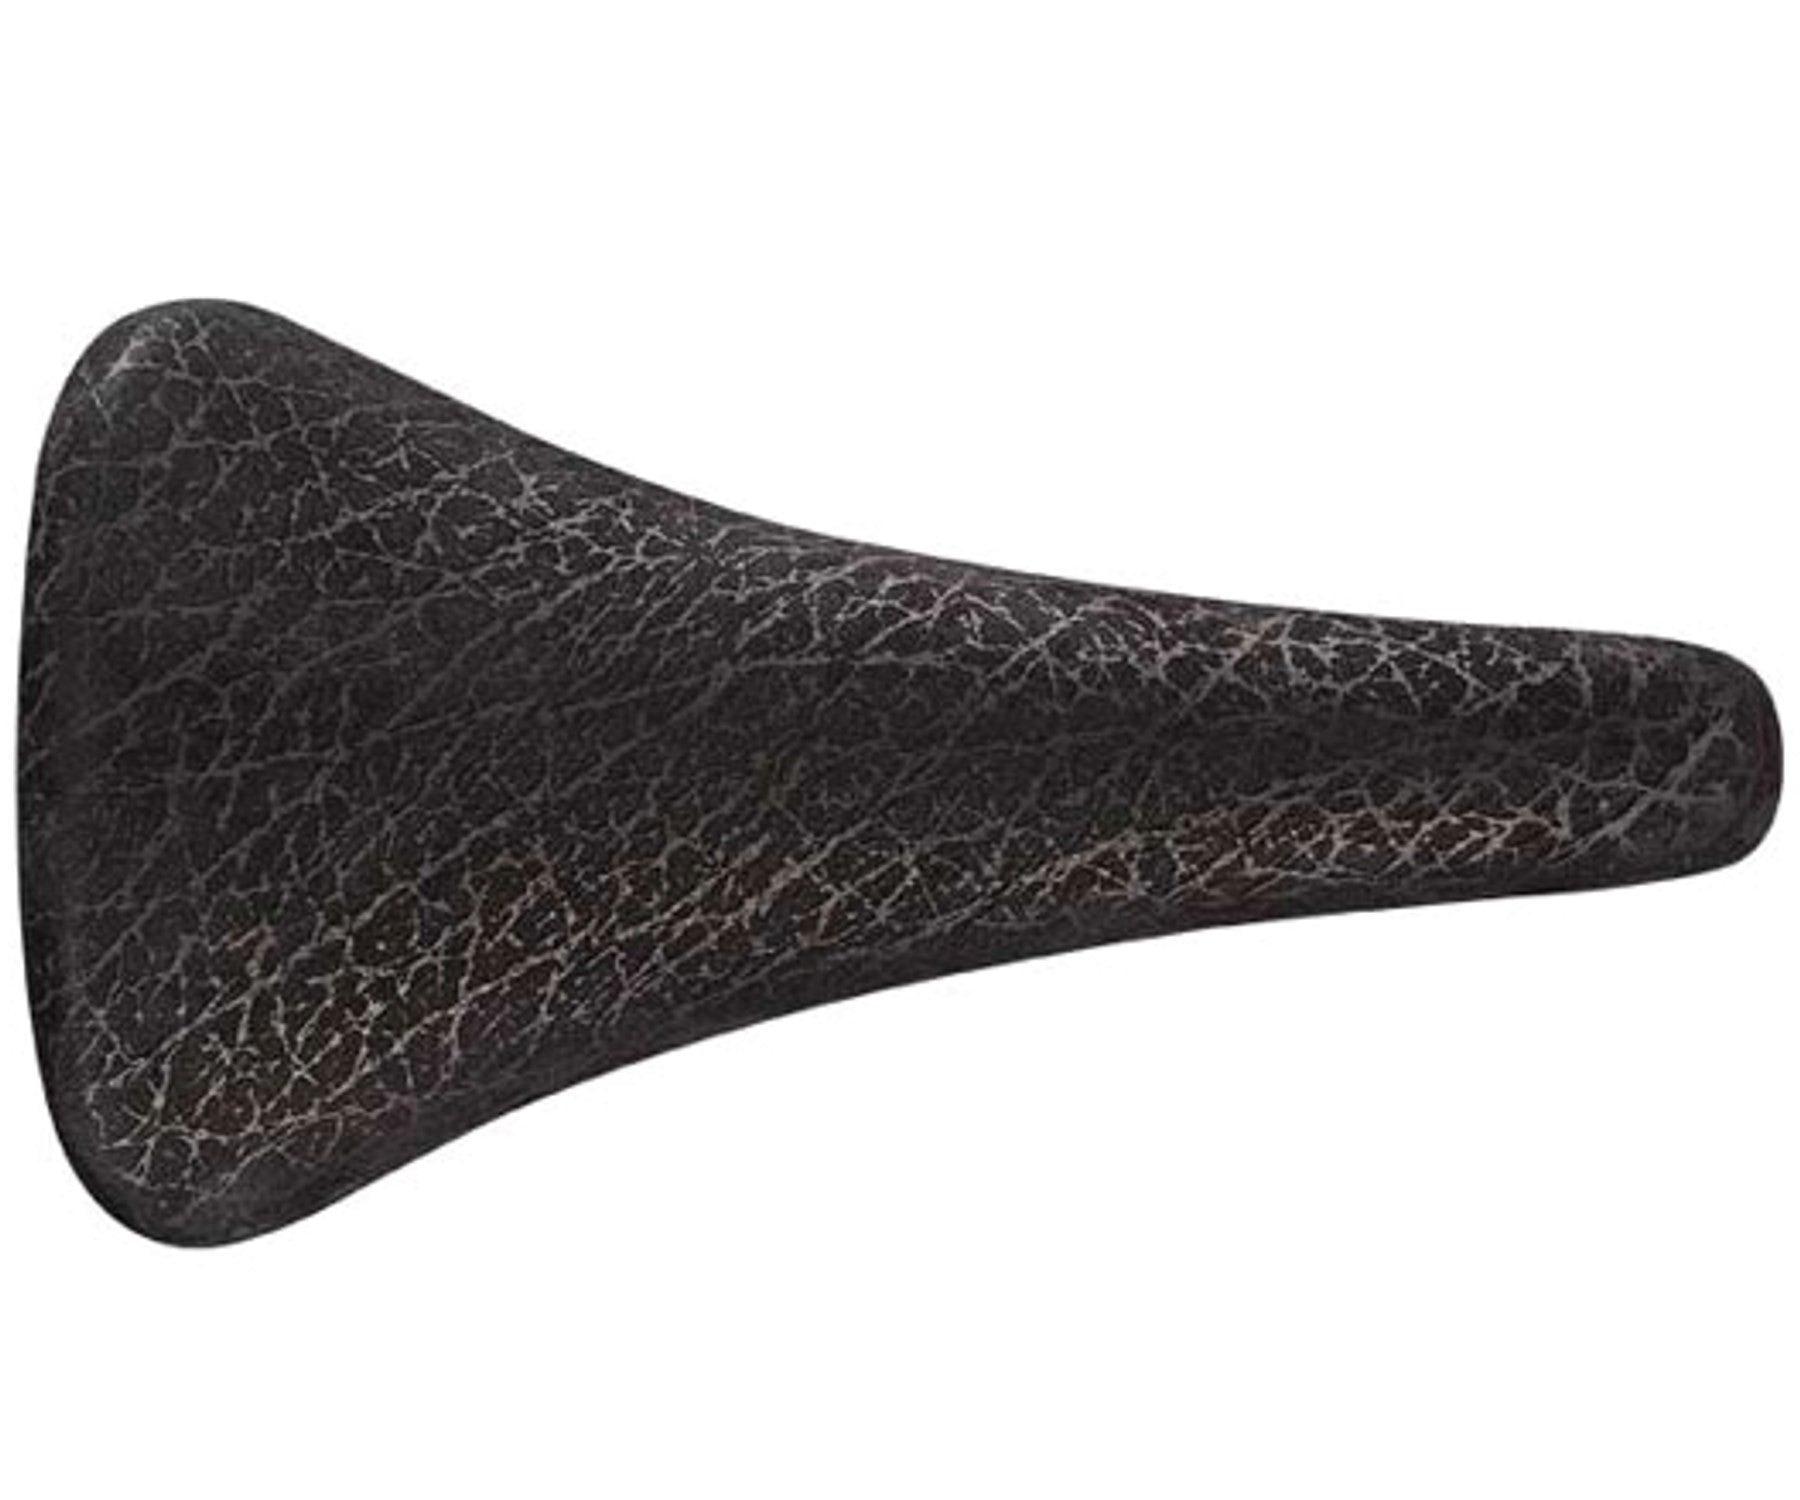 Selle San Marco Concor Supercorsa saddle